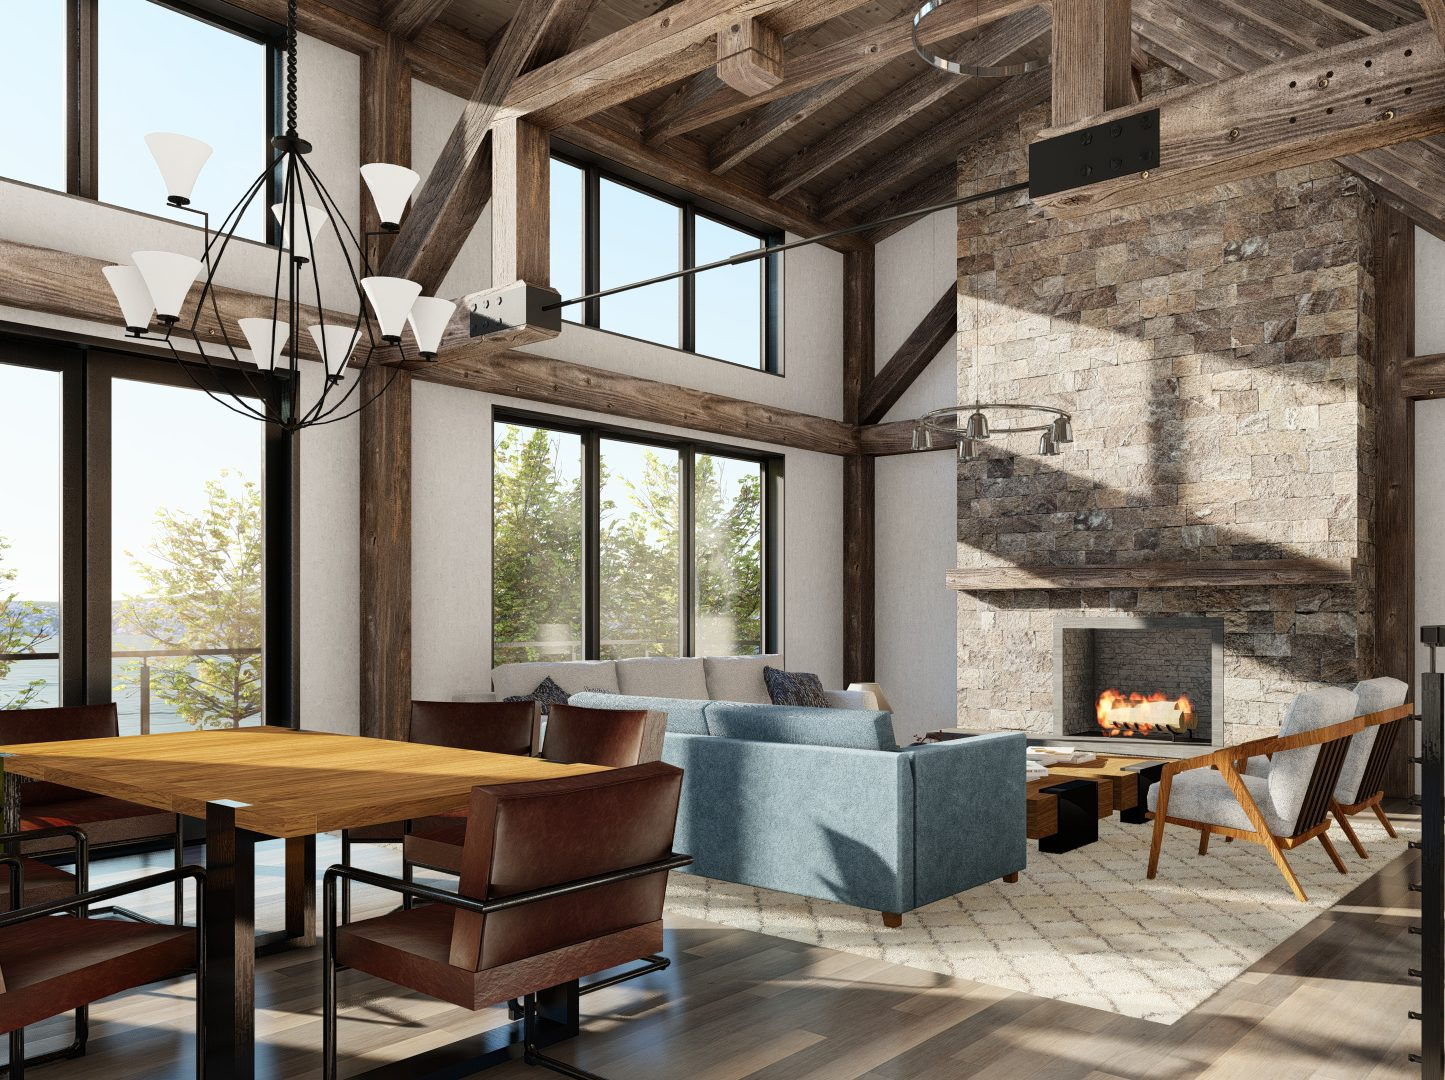 Normerica Timber Frames, House Plan, The Redstone 3920, Interior, Living Room, Open Concept, Cathedral Ceiling, Fireplace